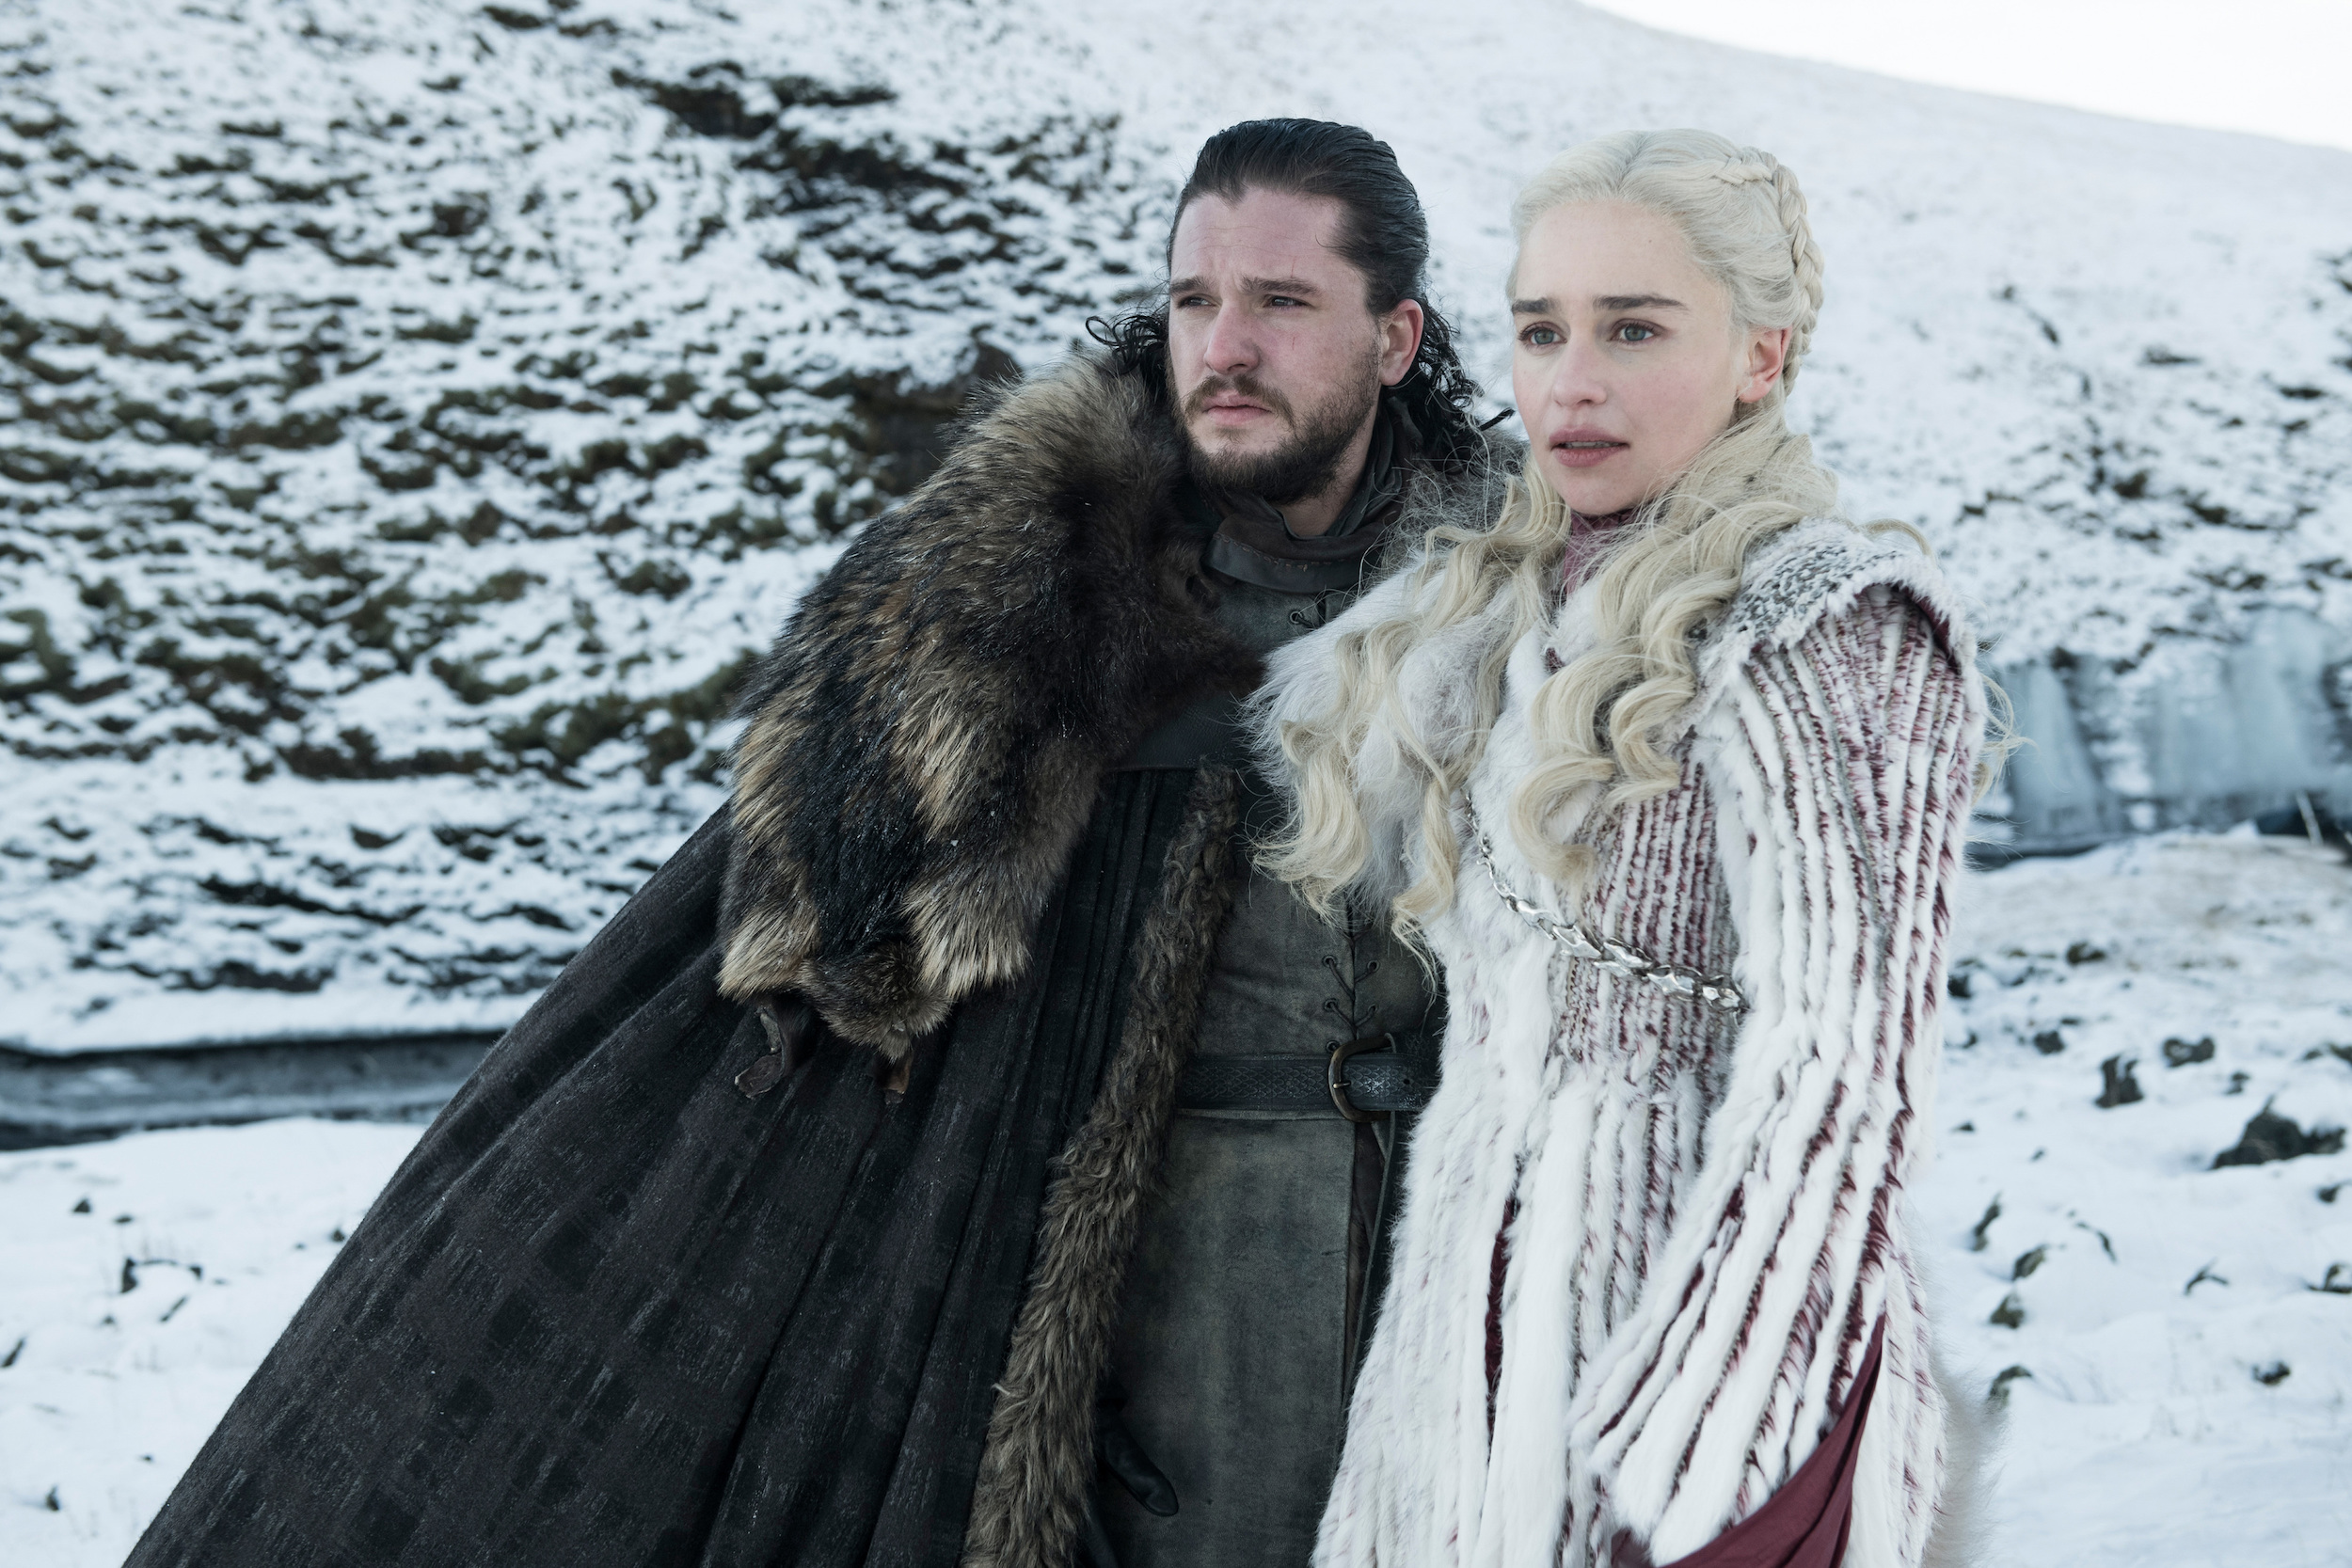 The Game of Thrones finale completes Jon Snow and Daenerys' song of ice and fire